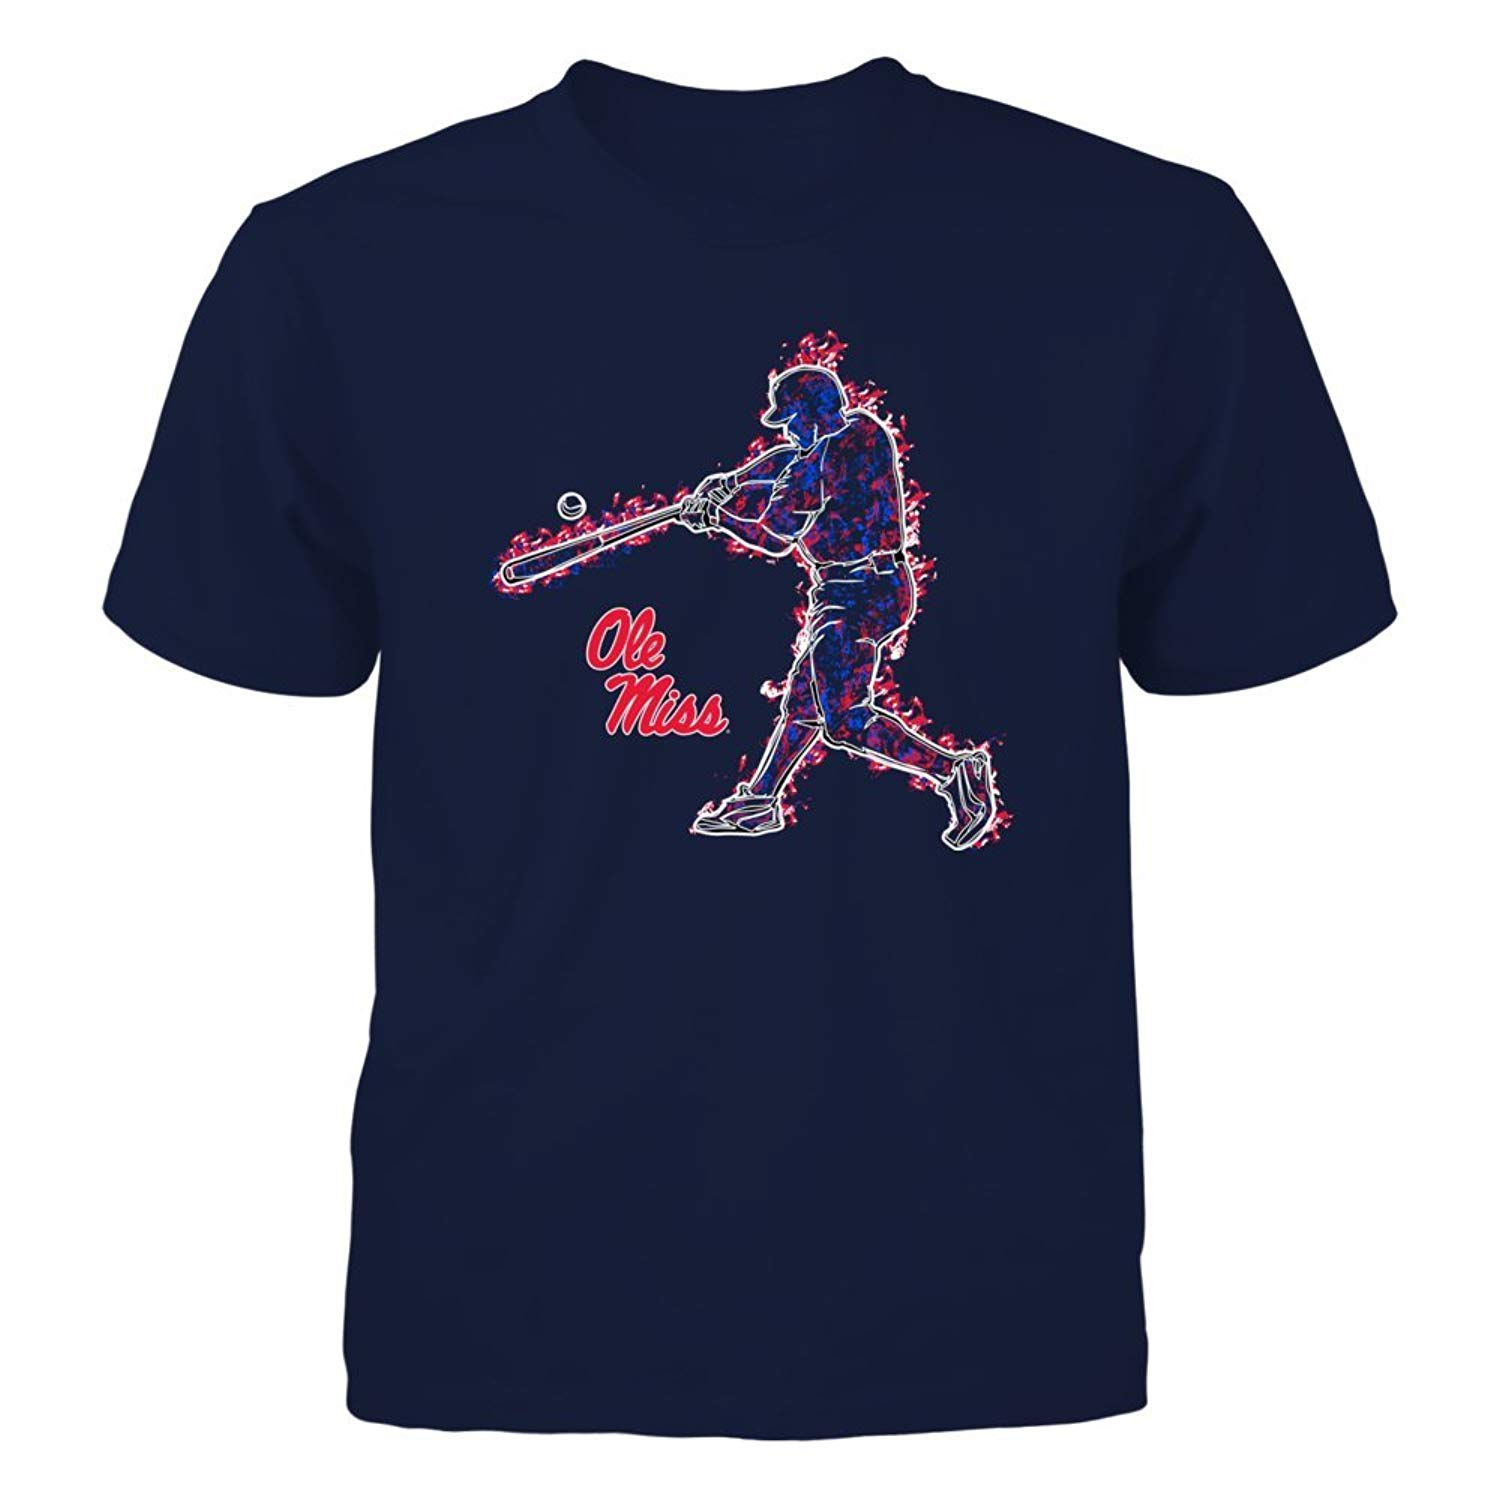 new styles 6e873 f5197 Get Quotations · Ole Miss Rebels - Baseball Player On Fire - T-Shirt -  Officially Licensed Fashion